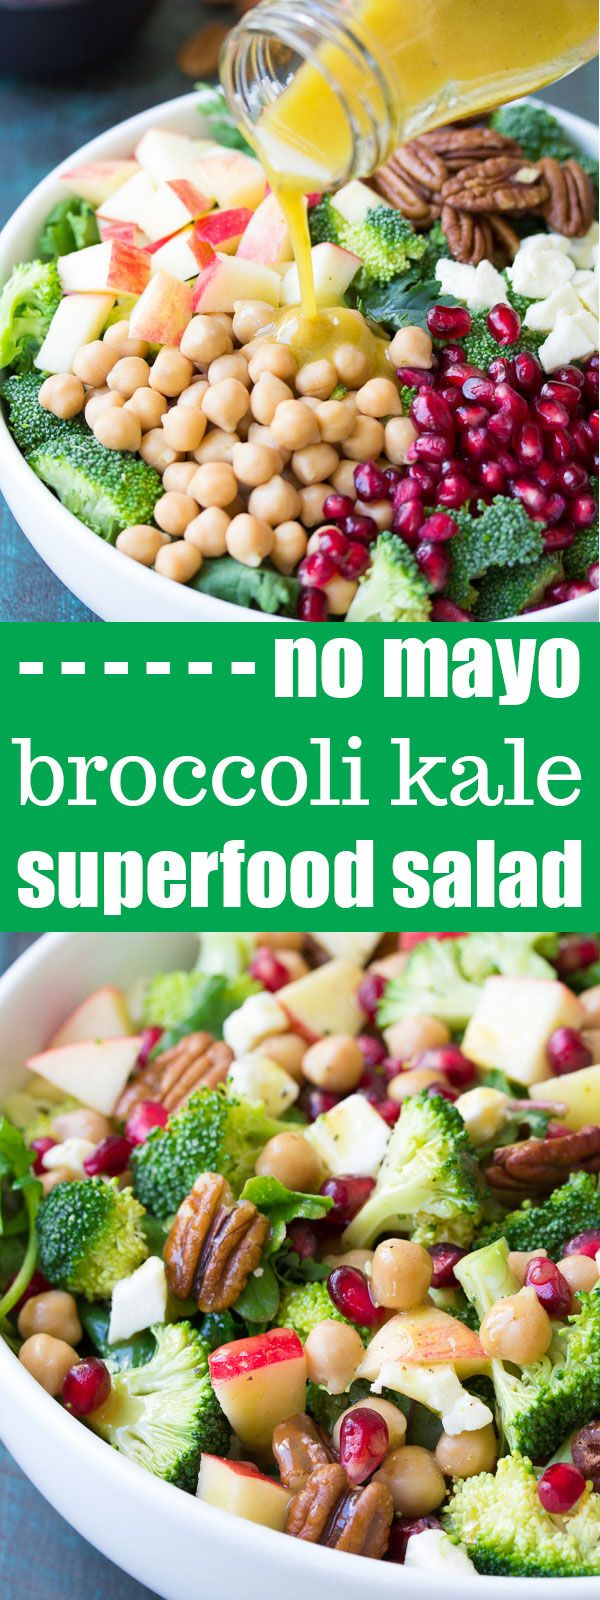 This Broccoli Kale Superfood Salad is a healthy holiday side dish. It's also delicious for lunch! With chickpeas, pomegranate seeds, apple, pecans and feta cheese. A favorite no mayo broccoli salad! #ad